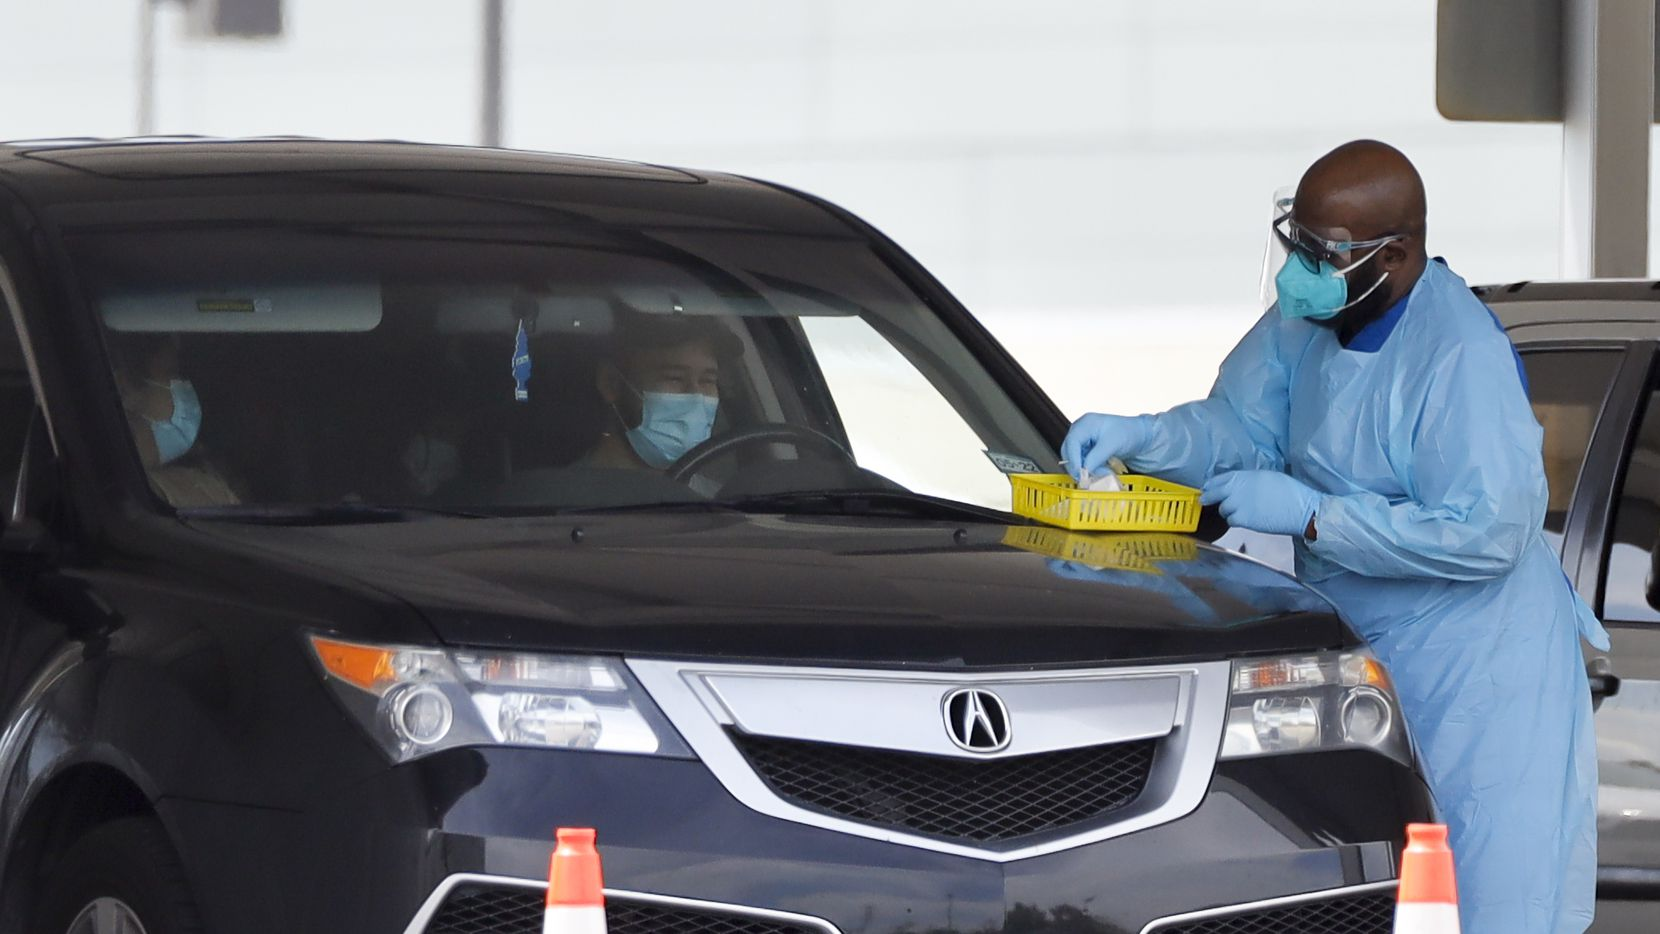 A health care worker prepares to collect a sample for a COVID-19 test at a drive-through testing site outside the Ellis Davis Field House in Dallas on Friday.